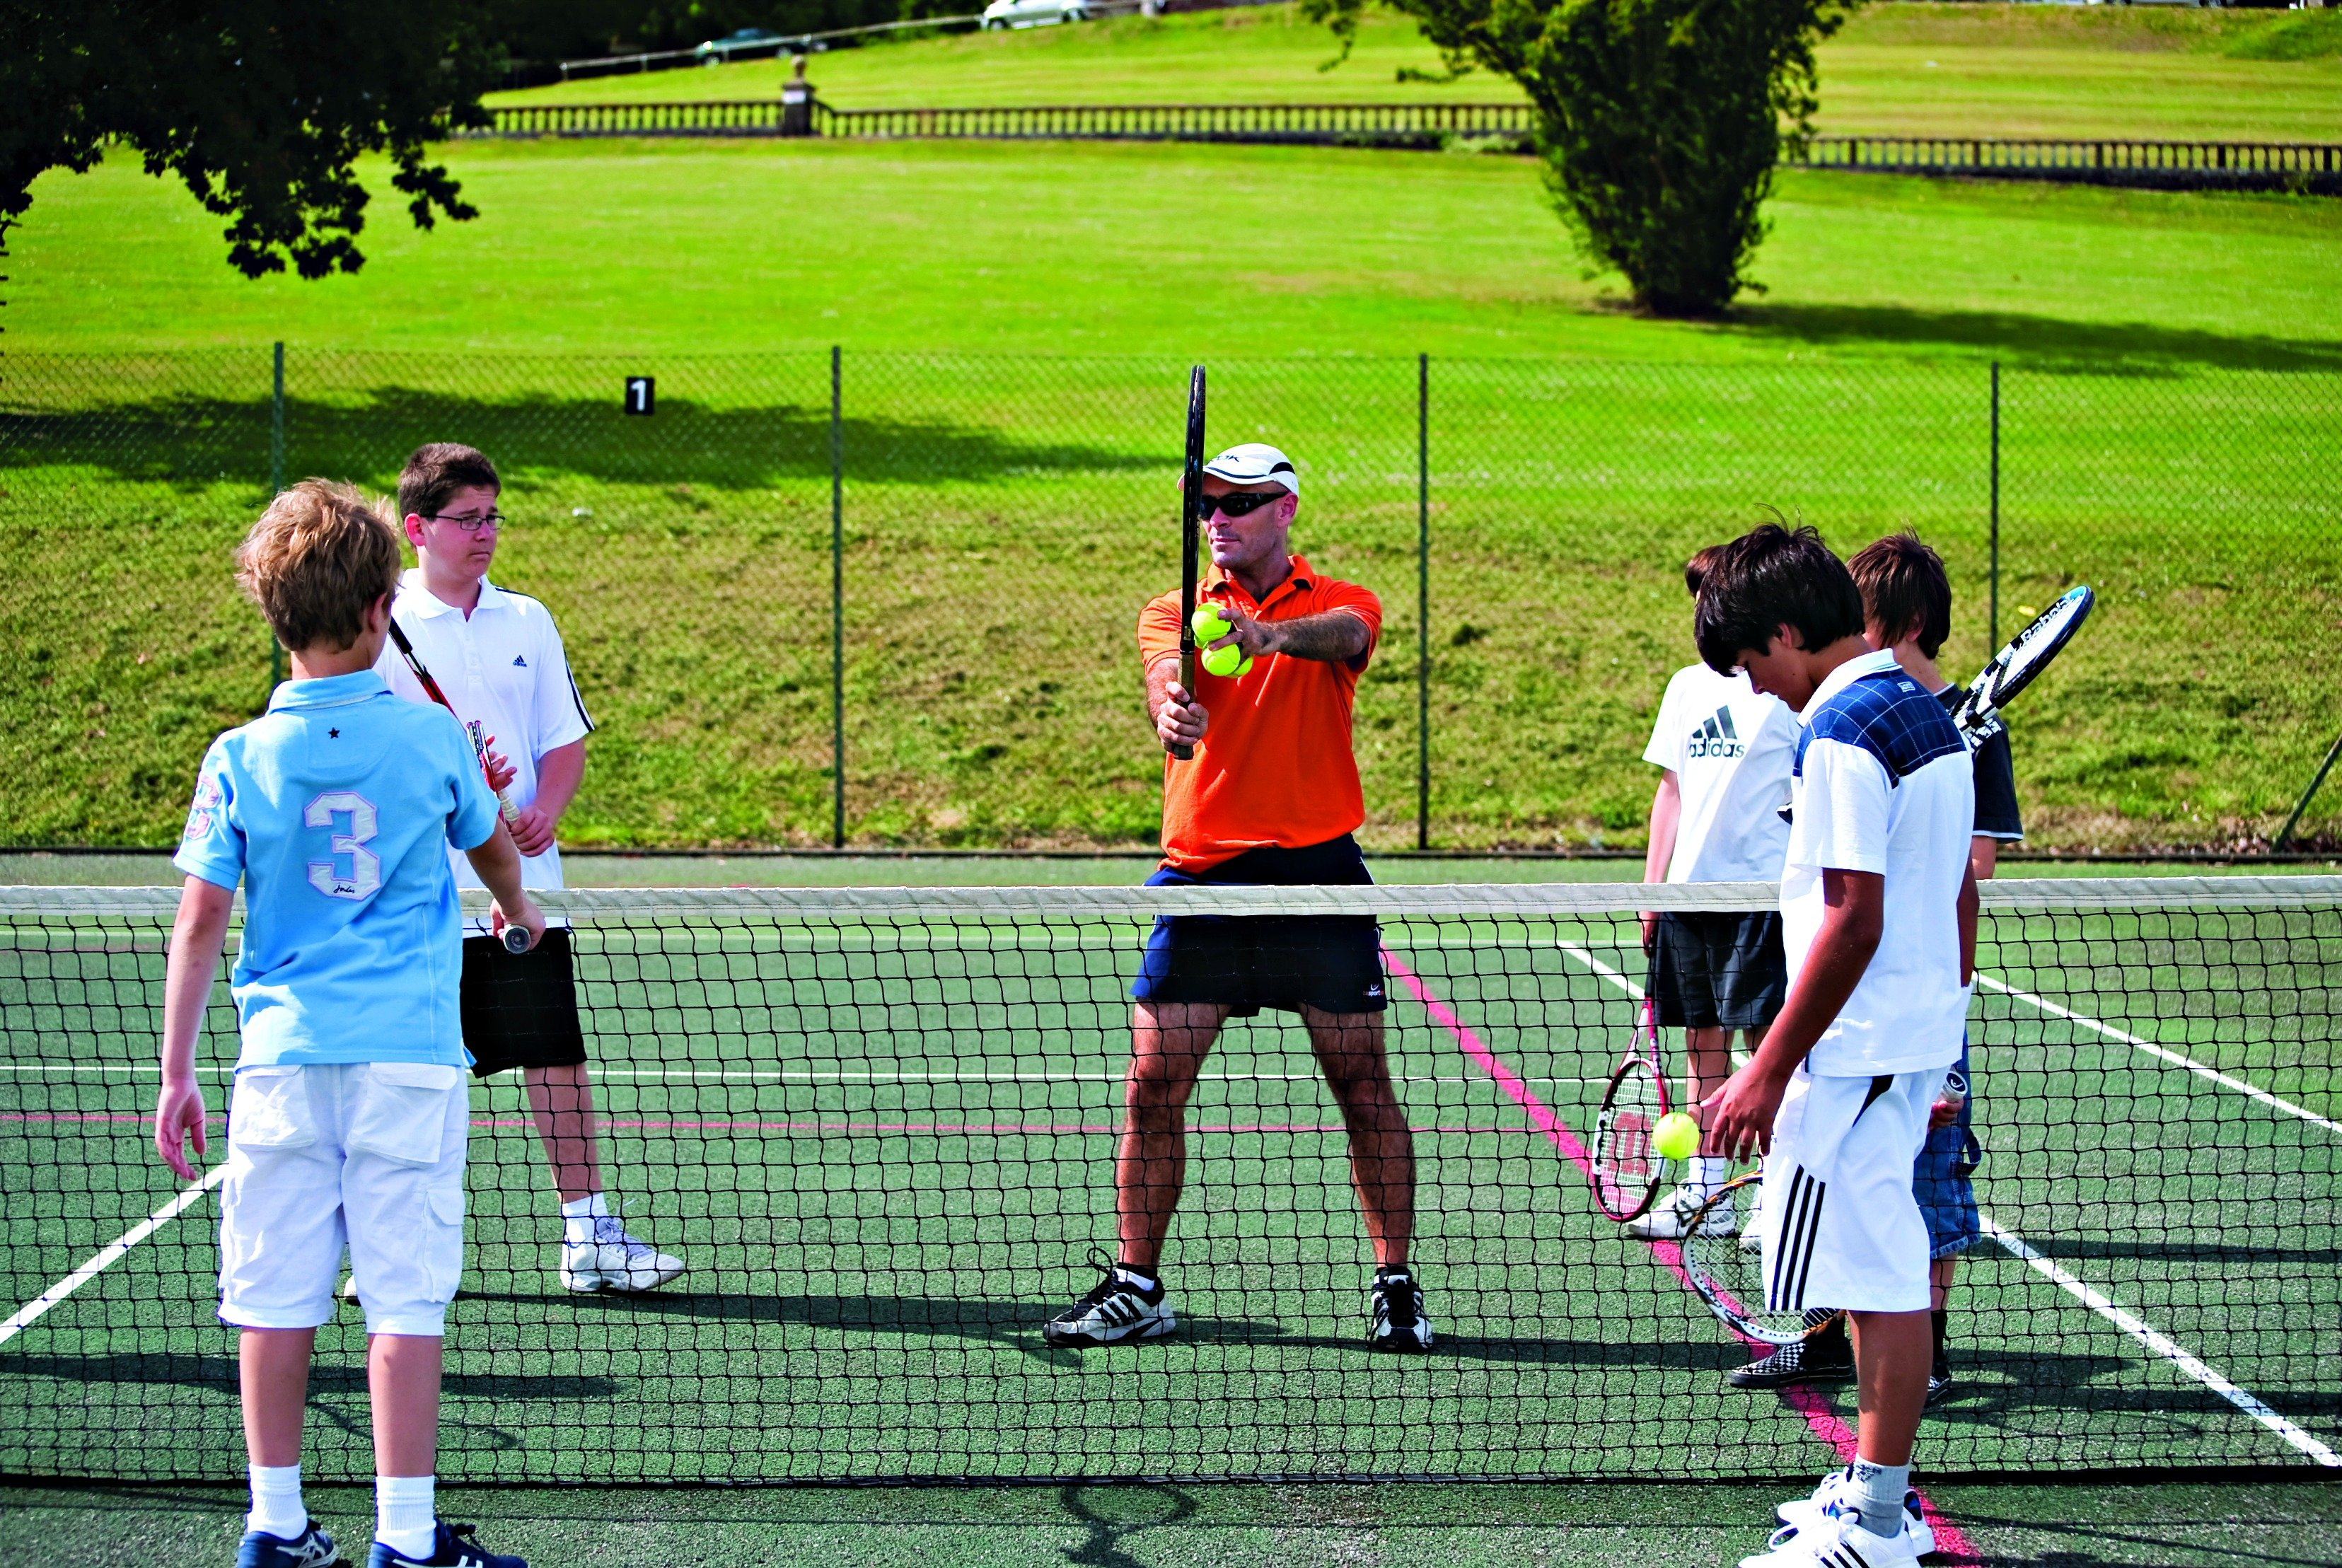 Tennis Practice - What is the ideal age for children to begin playing tennis?